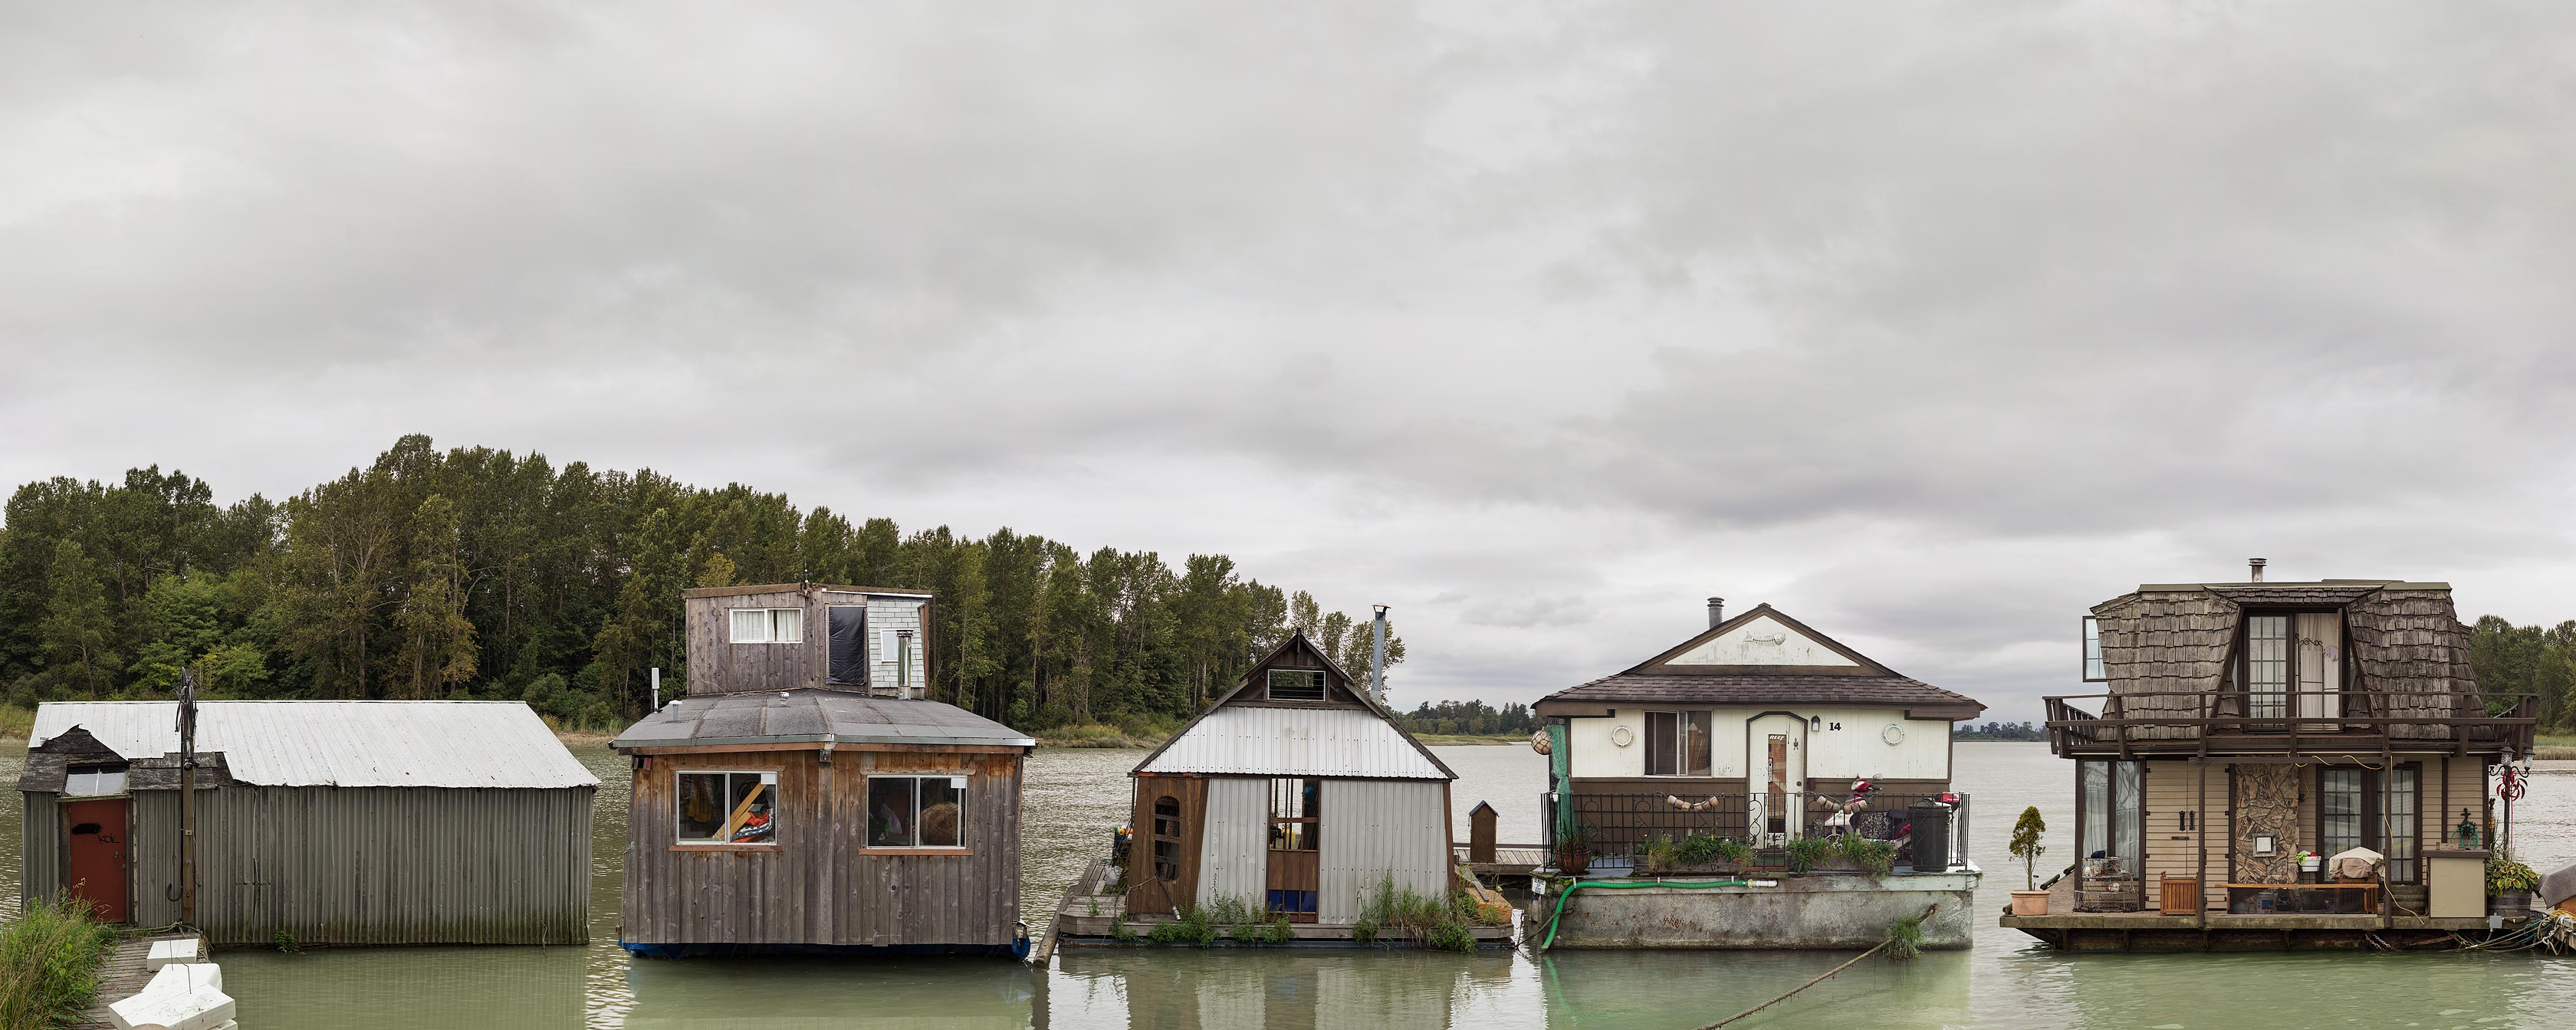 <p align=center><em>Floating Homes</em> <br />30″ x 75″, archival pigment print backmounted to aluminum, edition of 5<br /> 18″ x 45″, archival pigment print backmounted to aluminum, edition of 7</p>